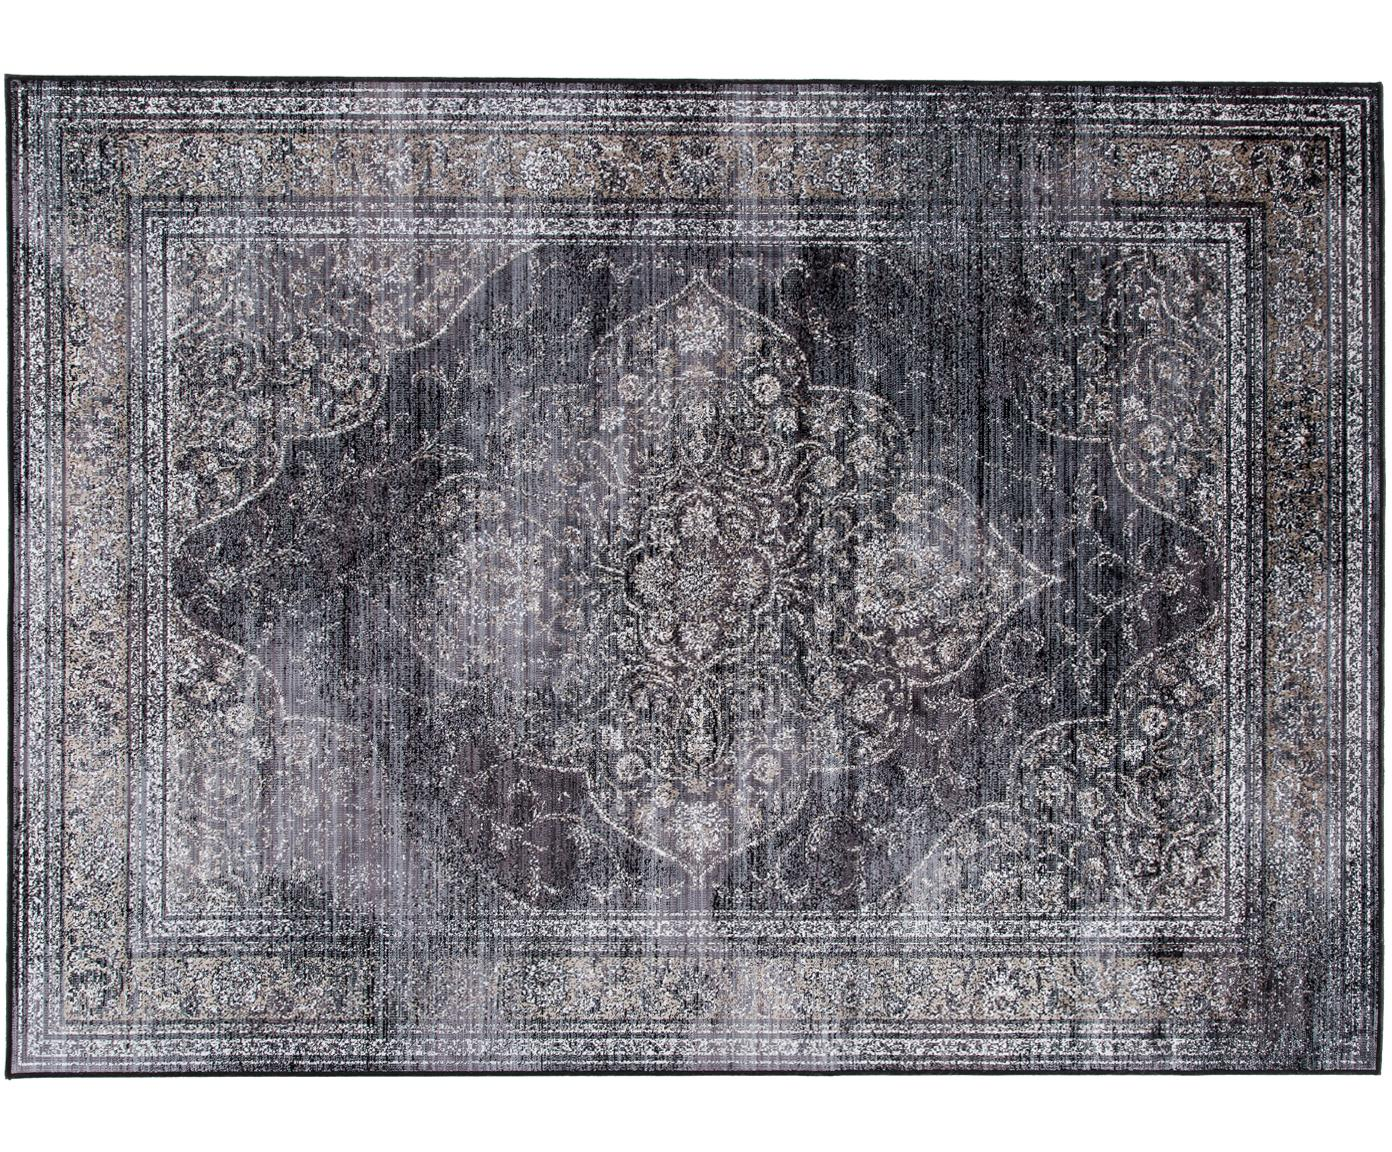 Vintage vloerkleed Rugged in antraciet, Antraciet, 170 x 240 cm